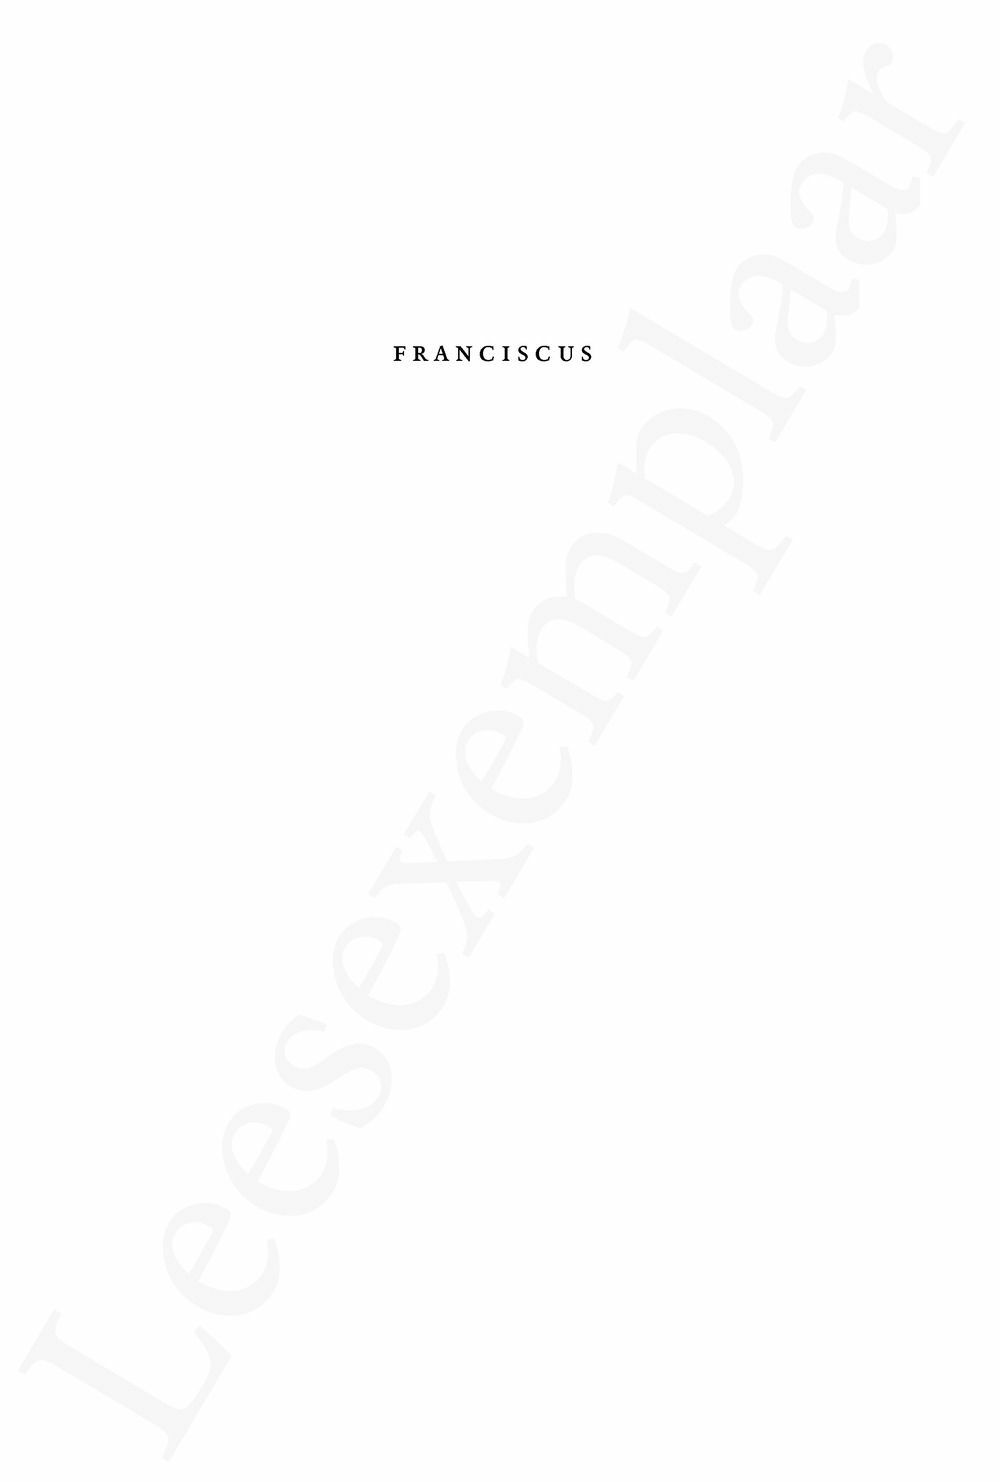 Preview: Franciscus